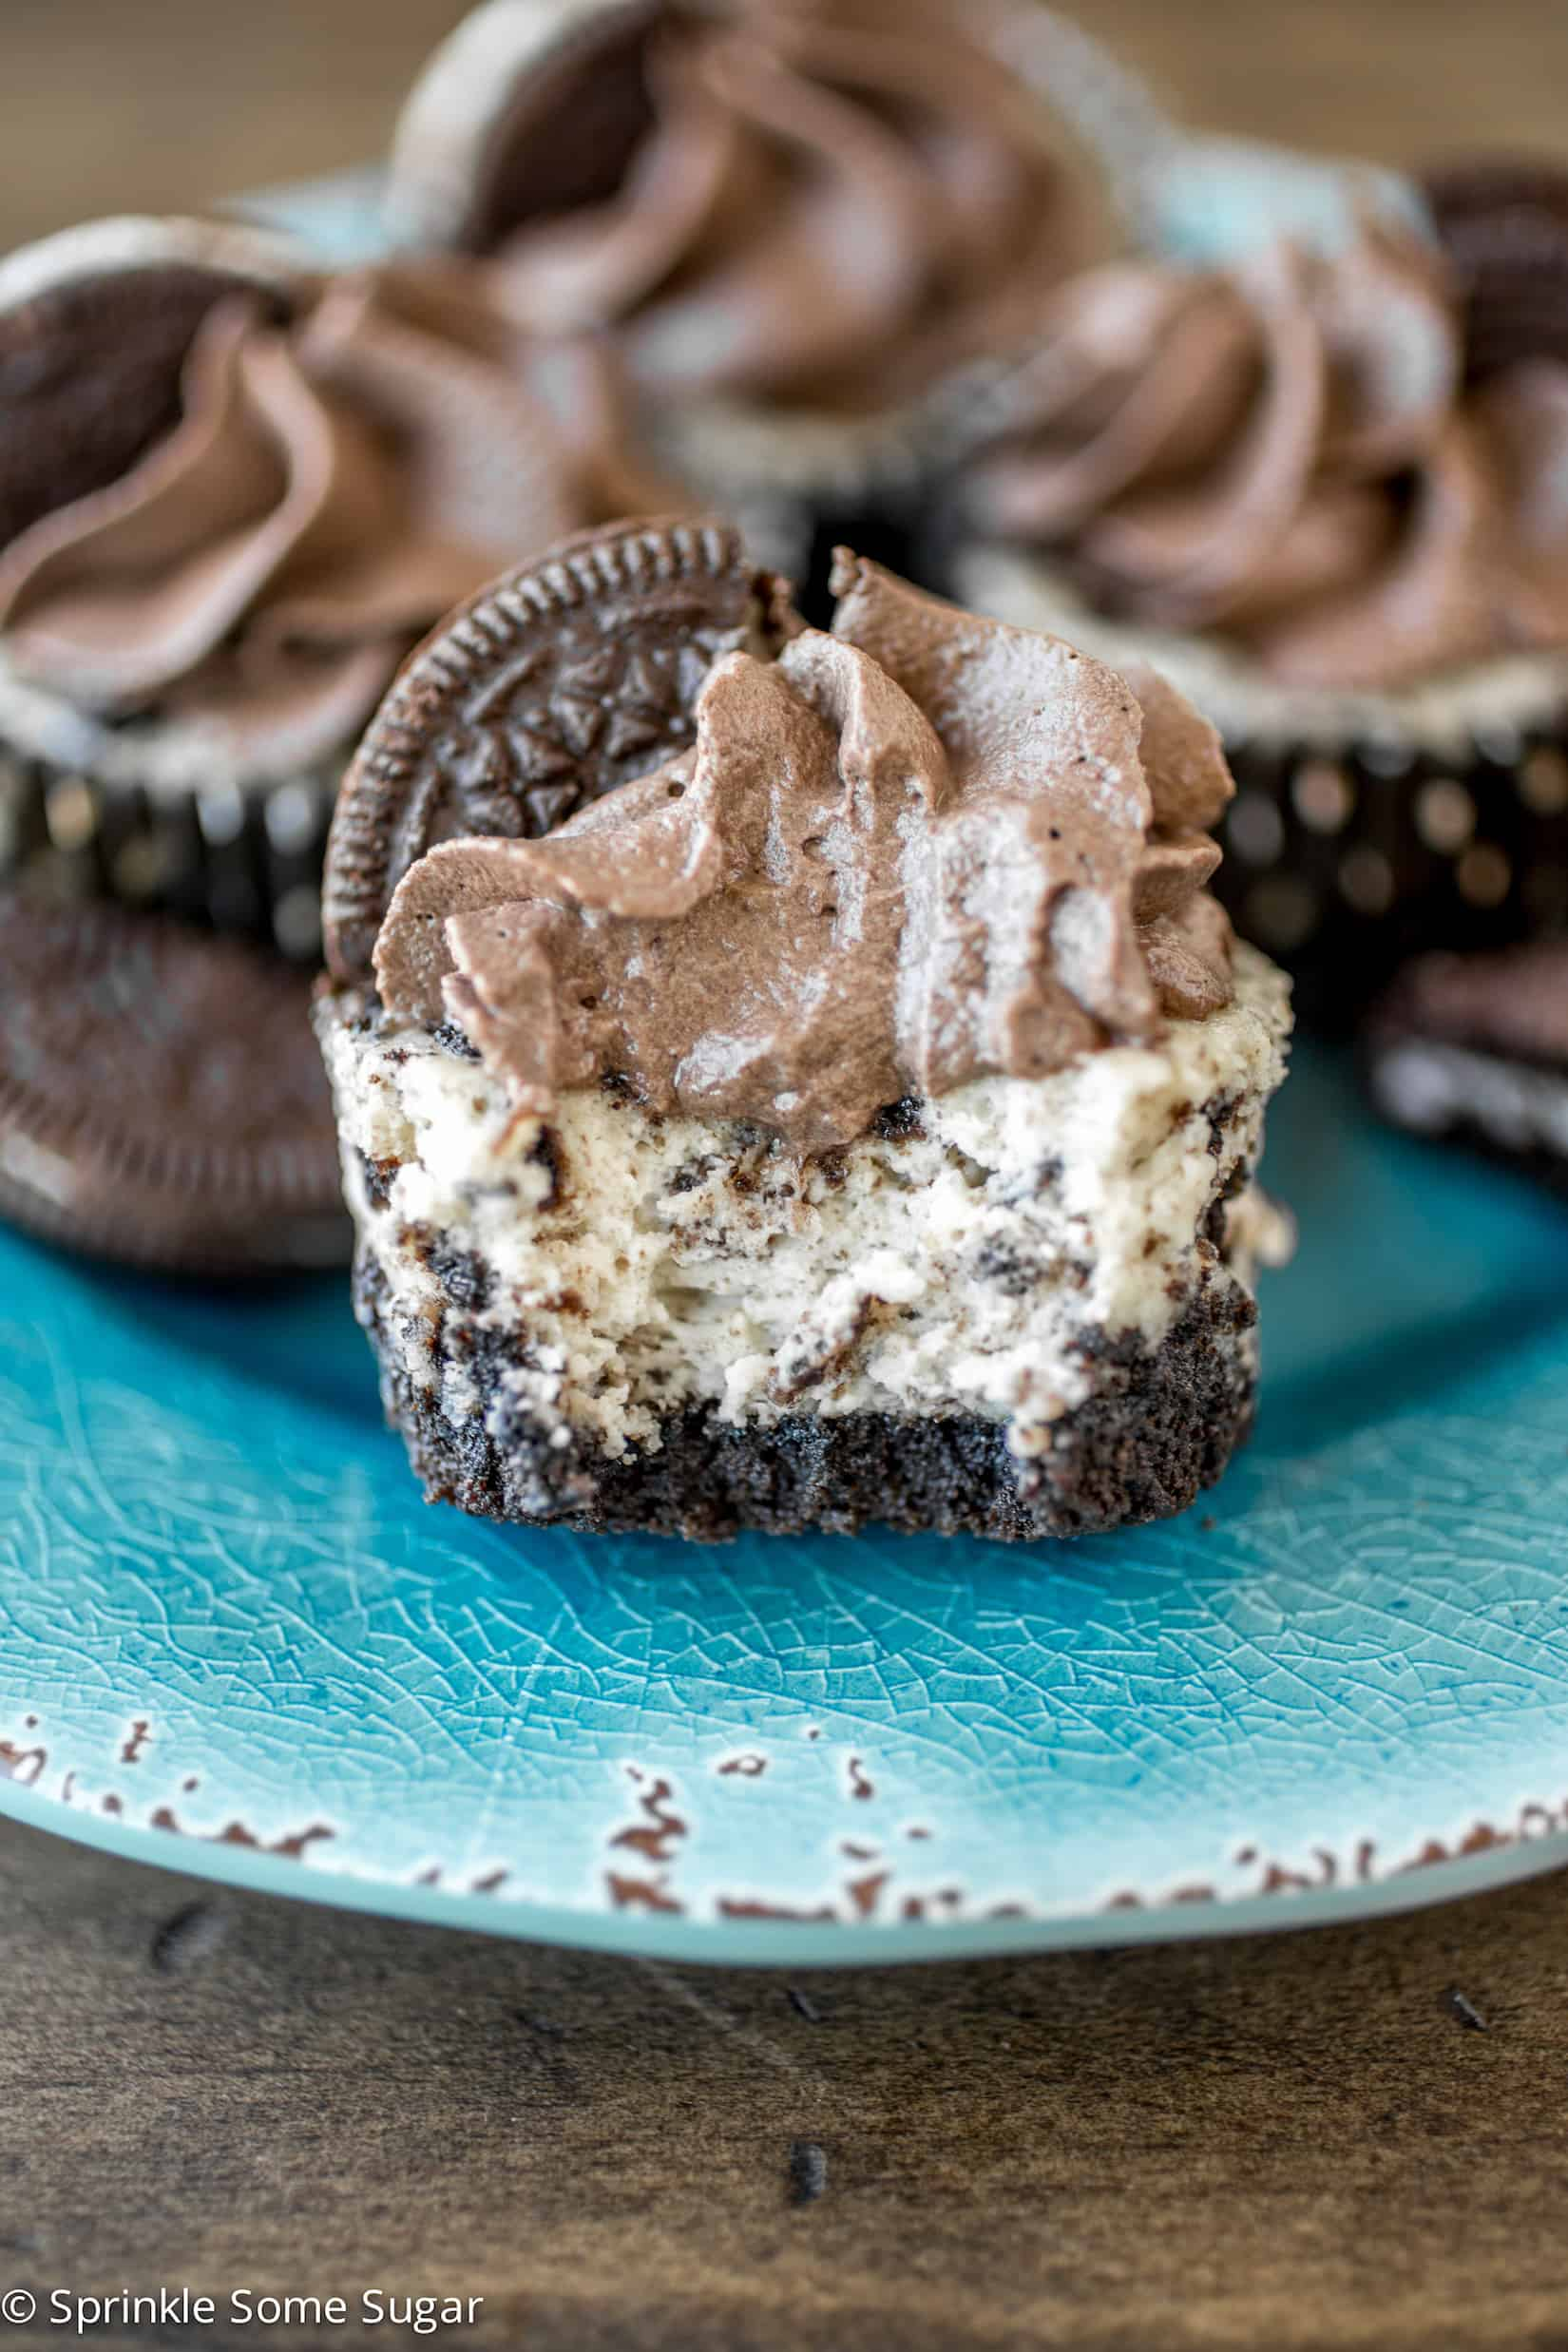 Mini Oreo Cheesecakes with Dark Chocolate Whipped Cream - These creamy mini Oreo cheesecakes with dark chocolate whipped cream are chock full of Oreos with an Oreo crust and topped with homemade whipped cream!